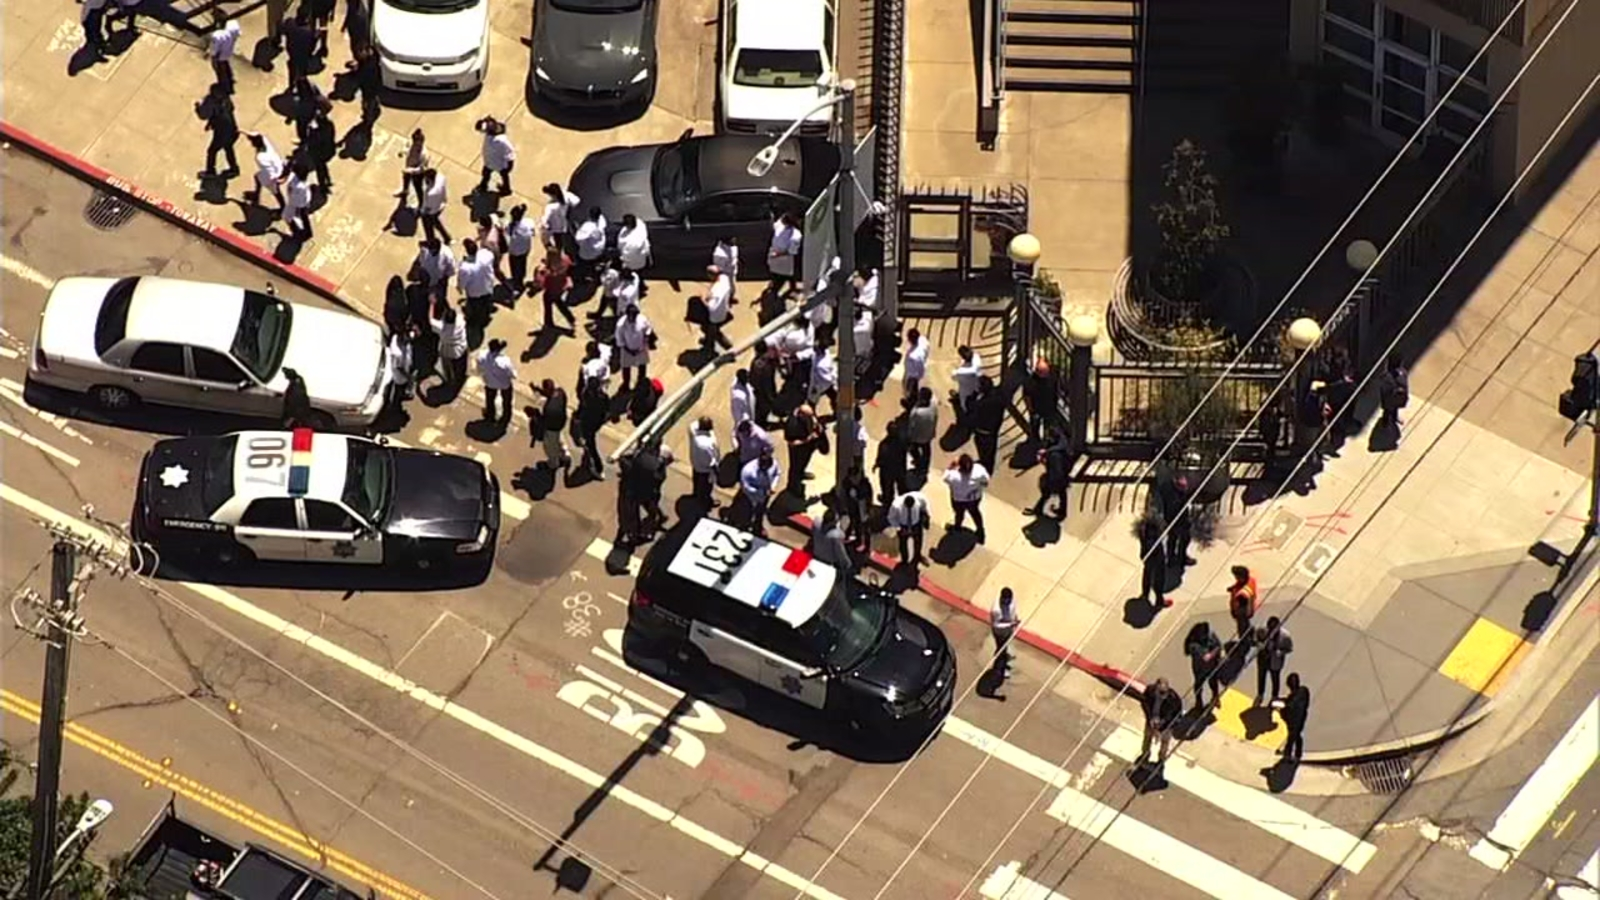 San Francisco police respond to reports of possible active shooter; Sutter Health medical building evacuated